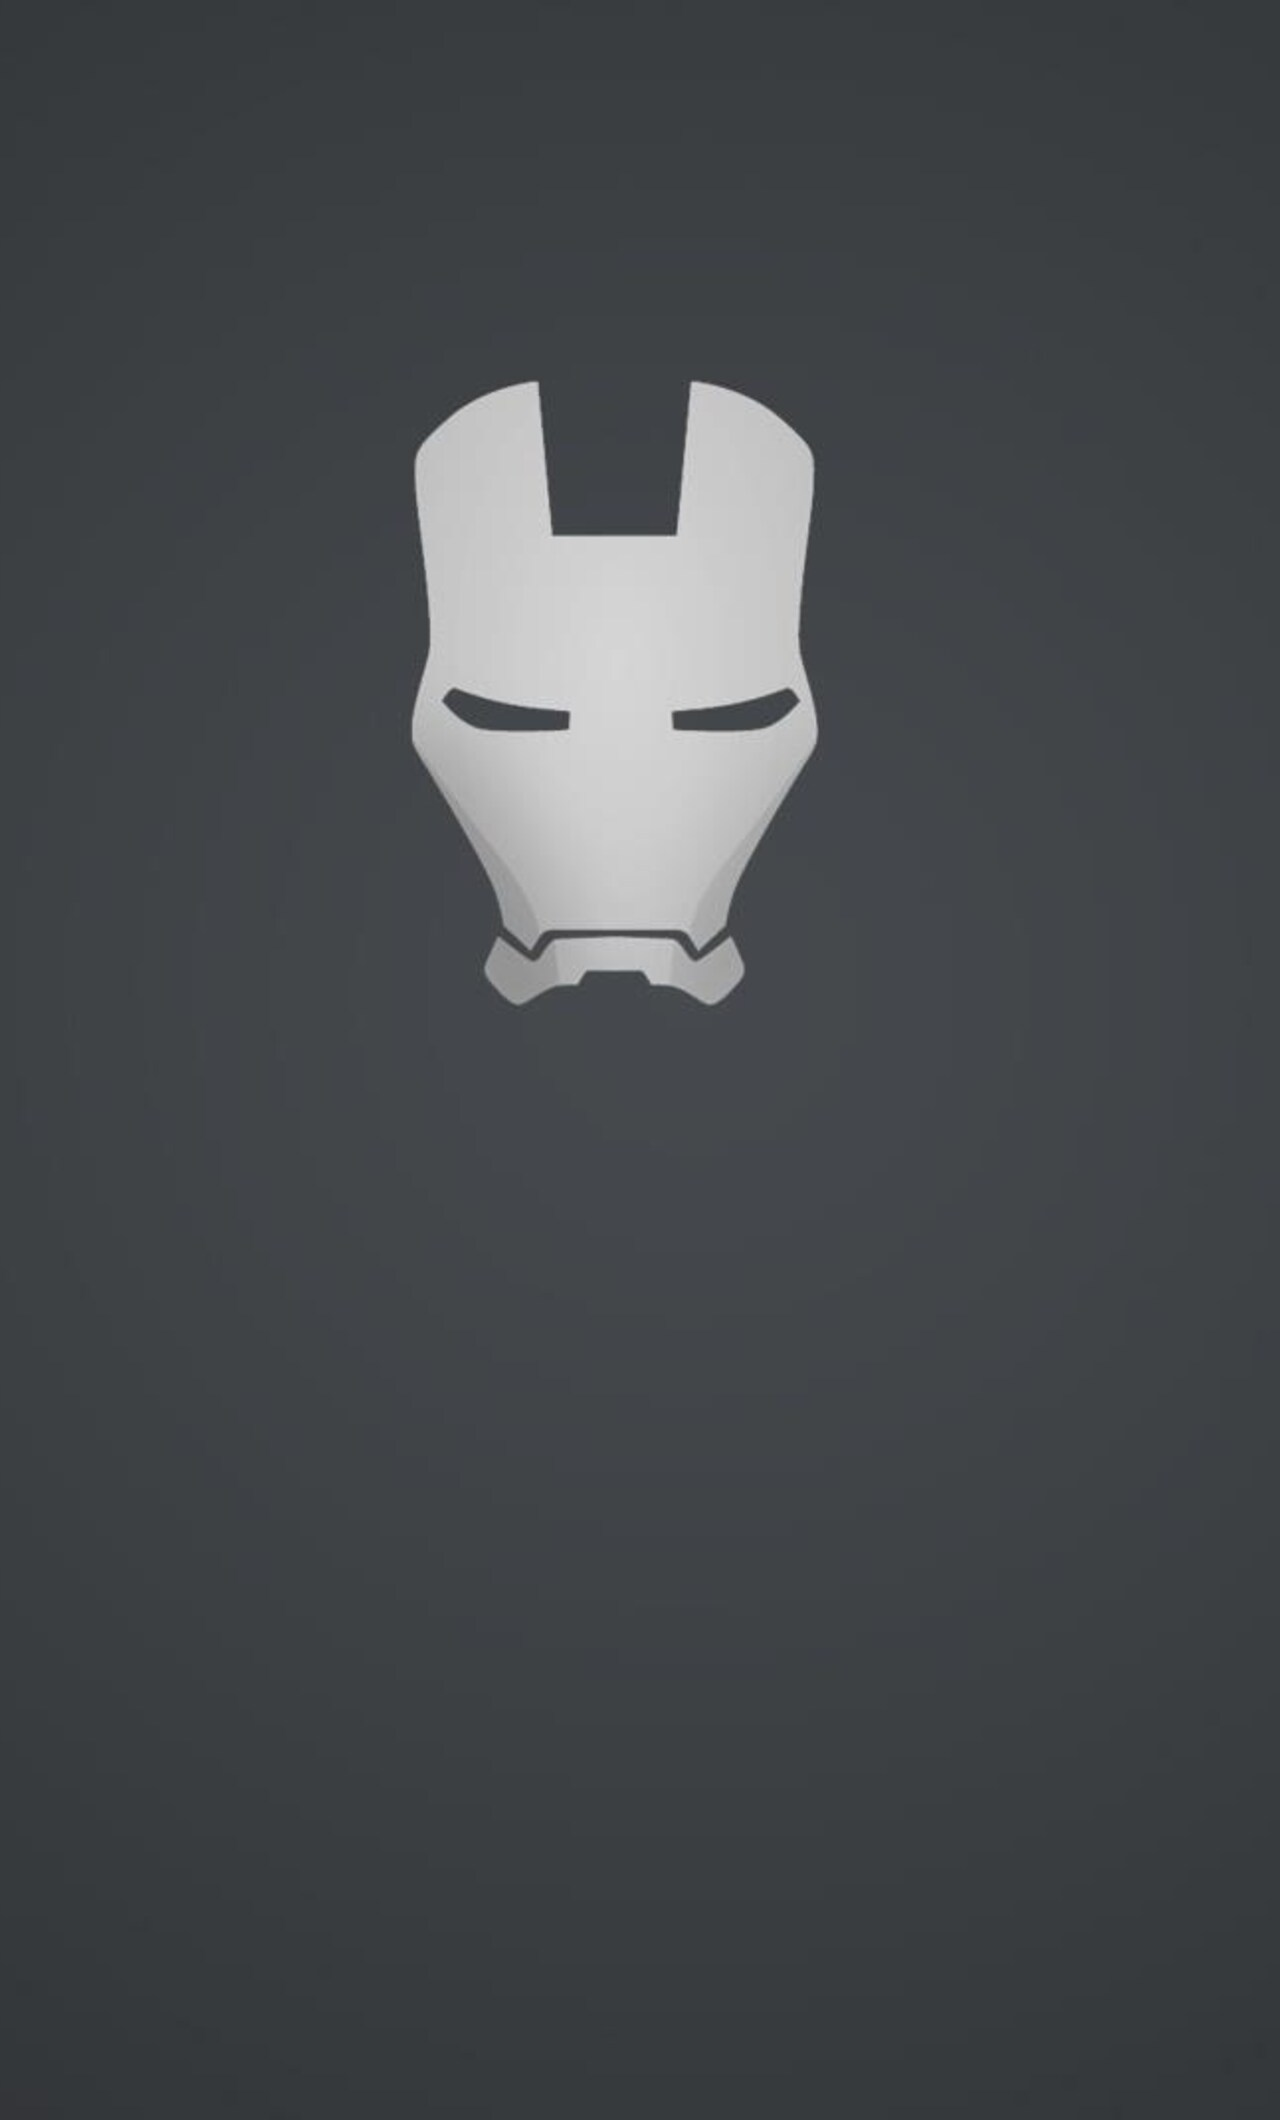 Iron Man Simple 3 Wallpaper